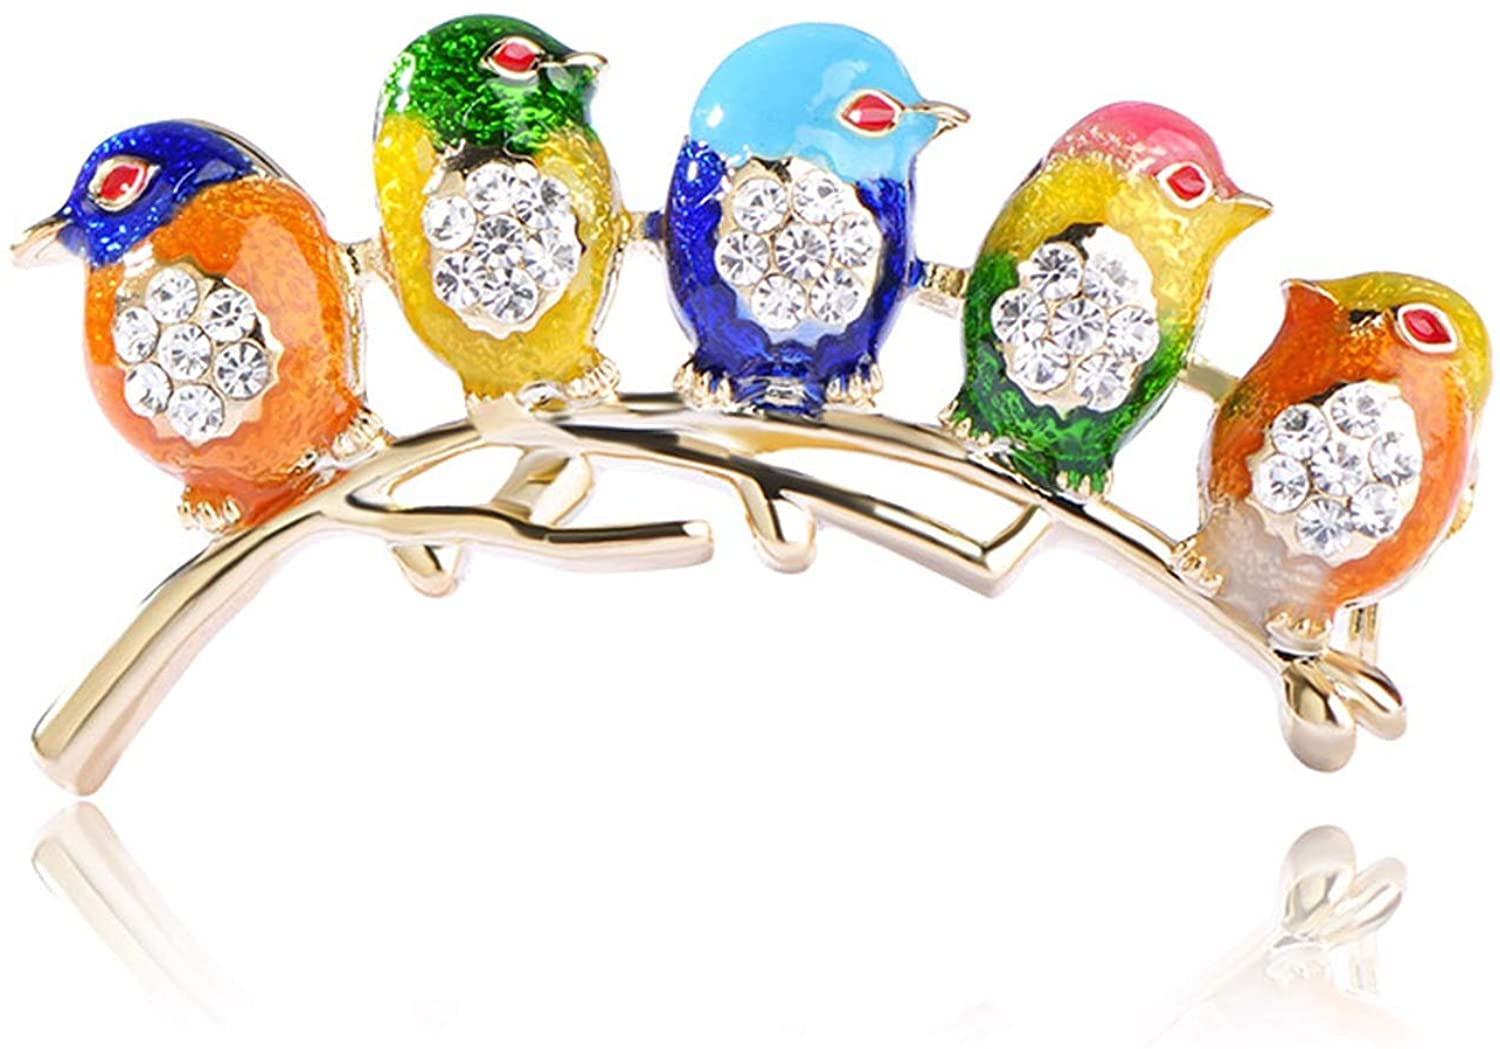 myeuphoria Colorful Five Cute Birds Brooches Crystals Enamel Jewelry for Scarf Suit Collar Corsages